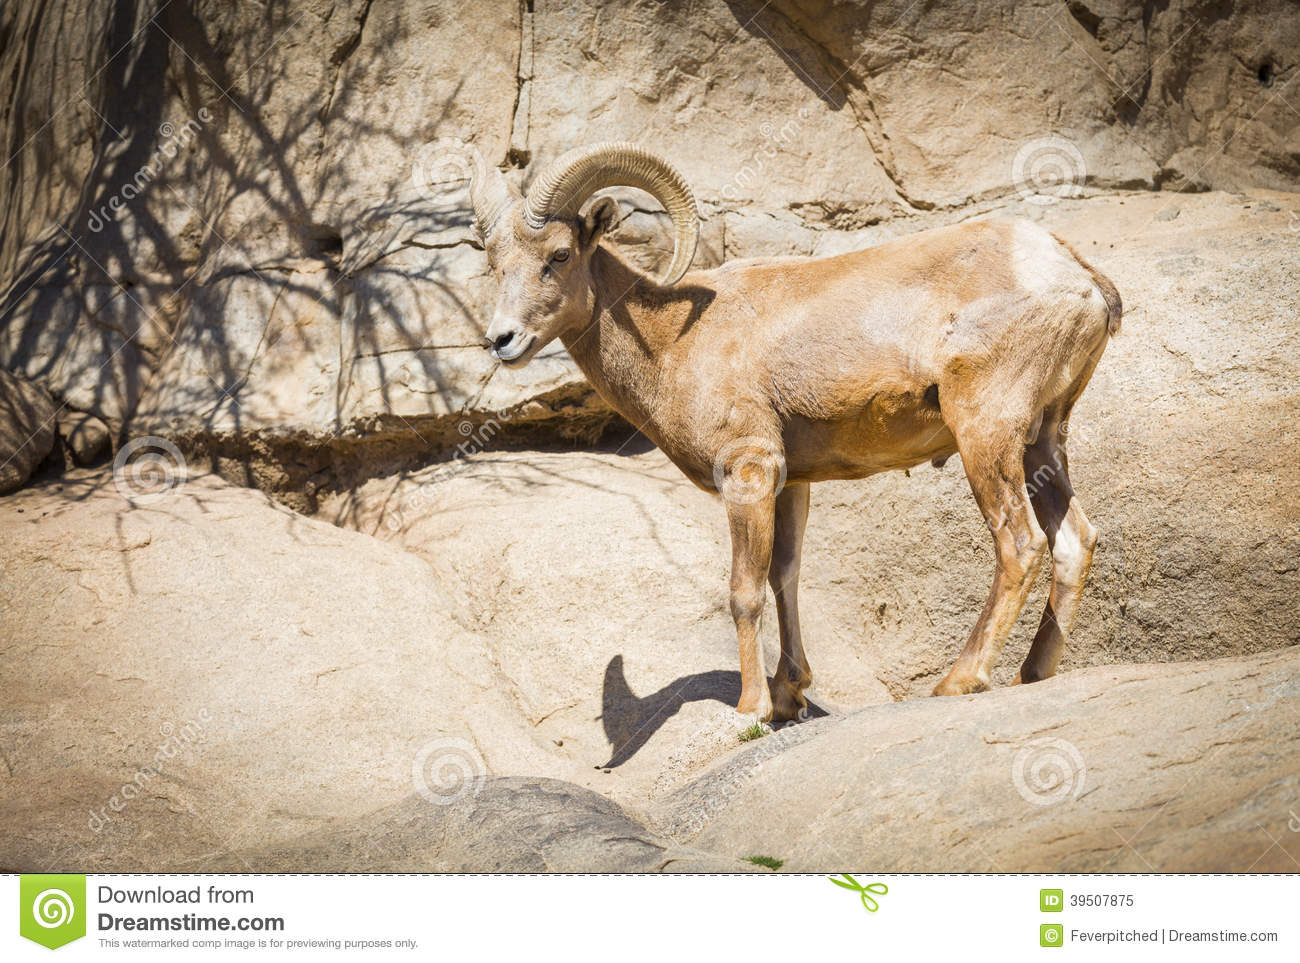 Profile of a Desert Bighorn Sheep